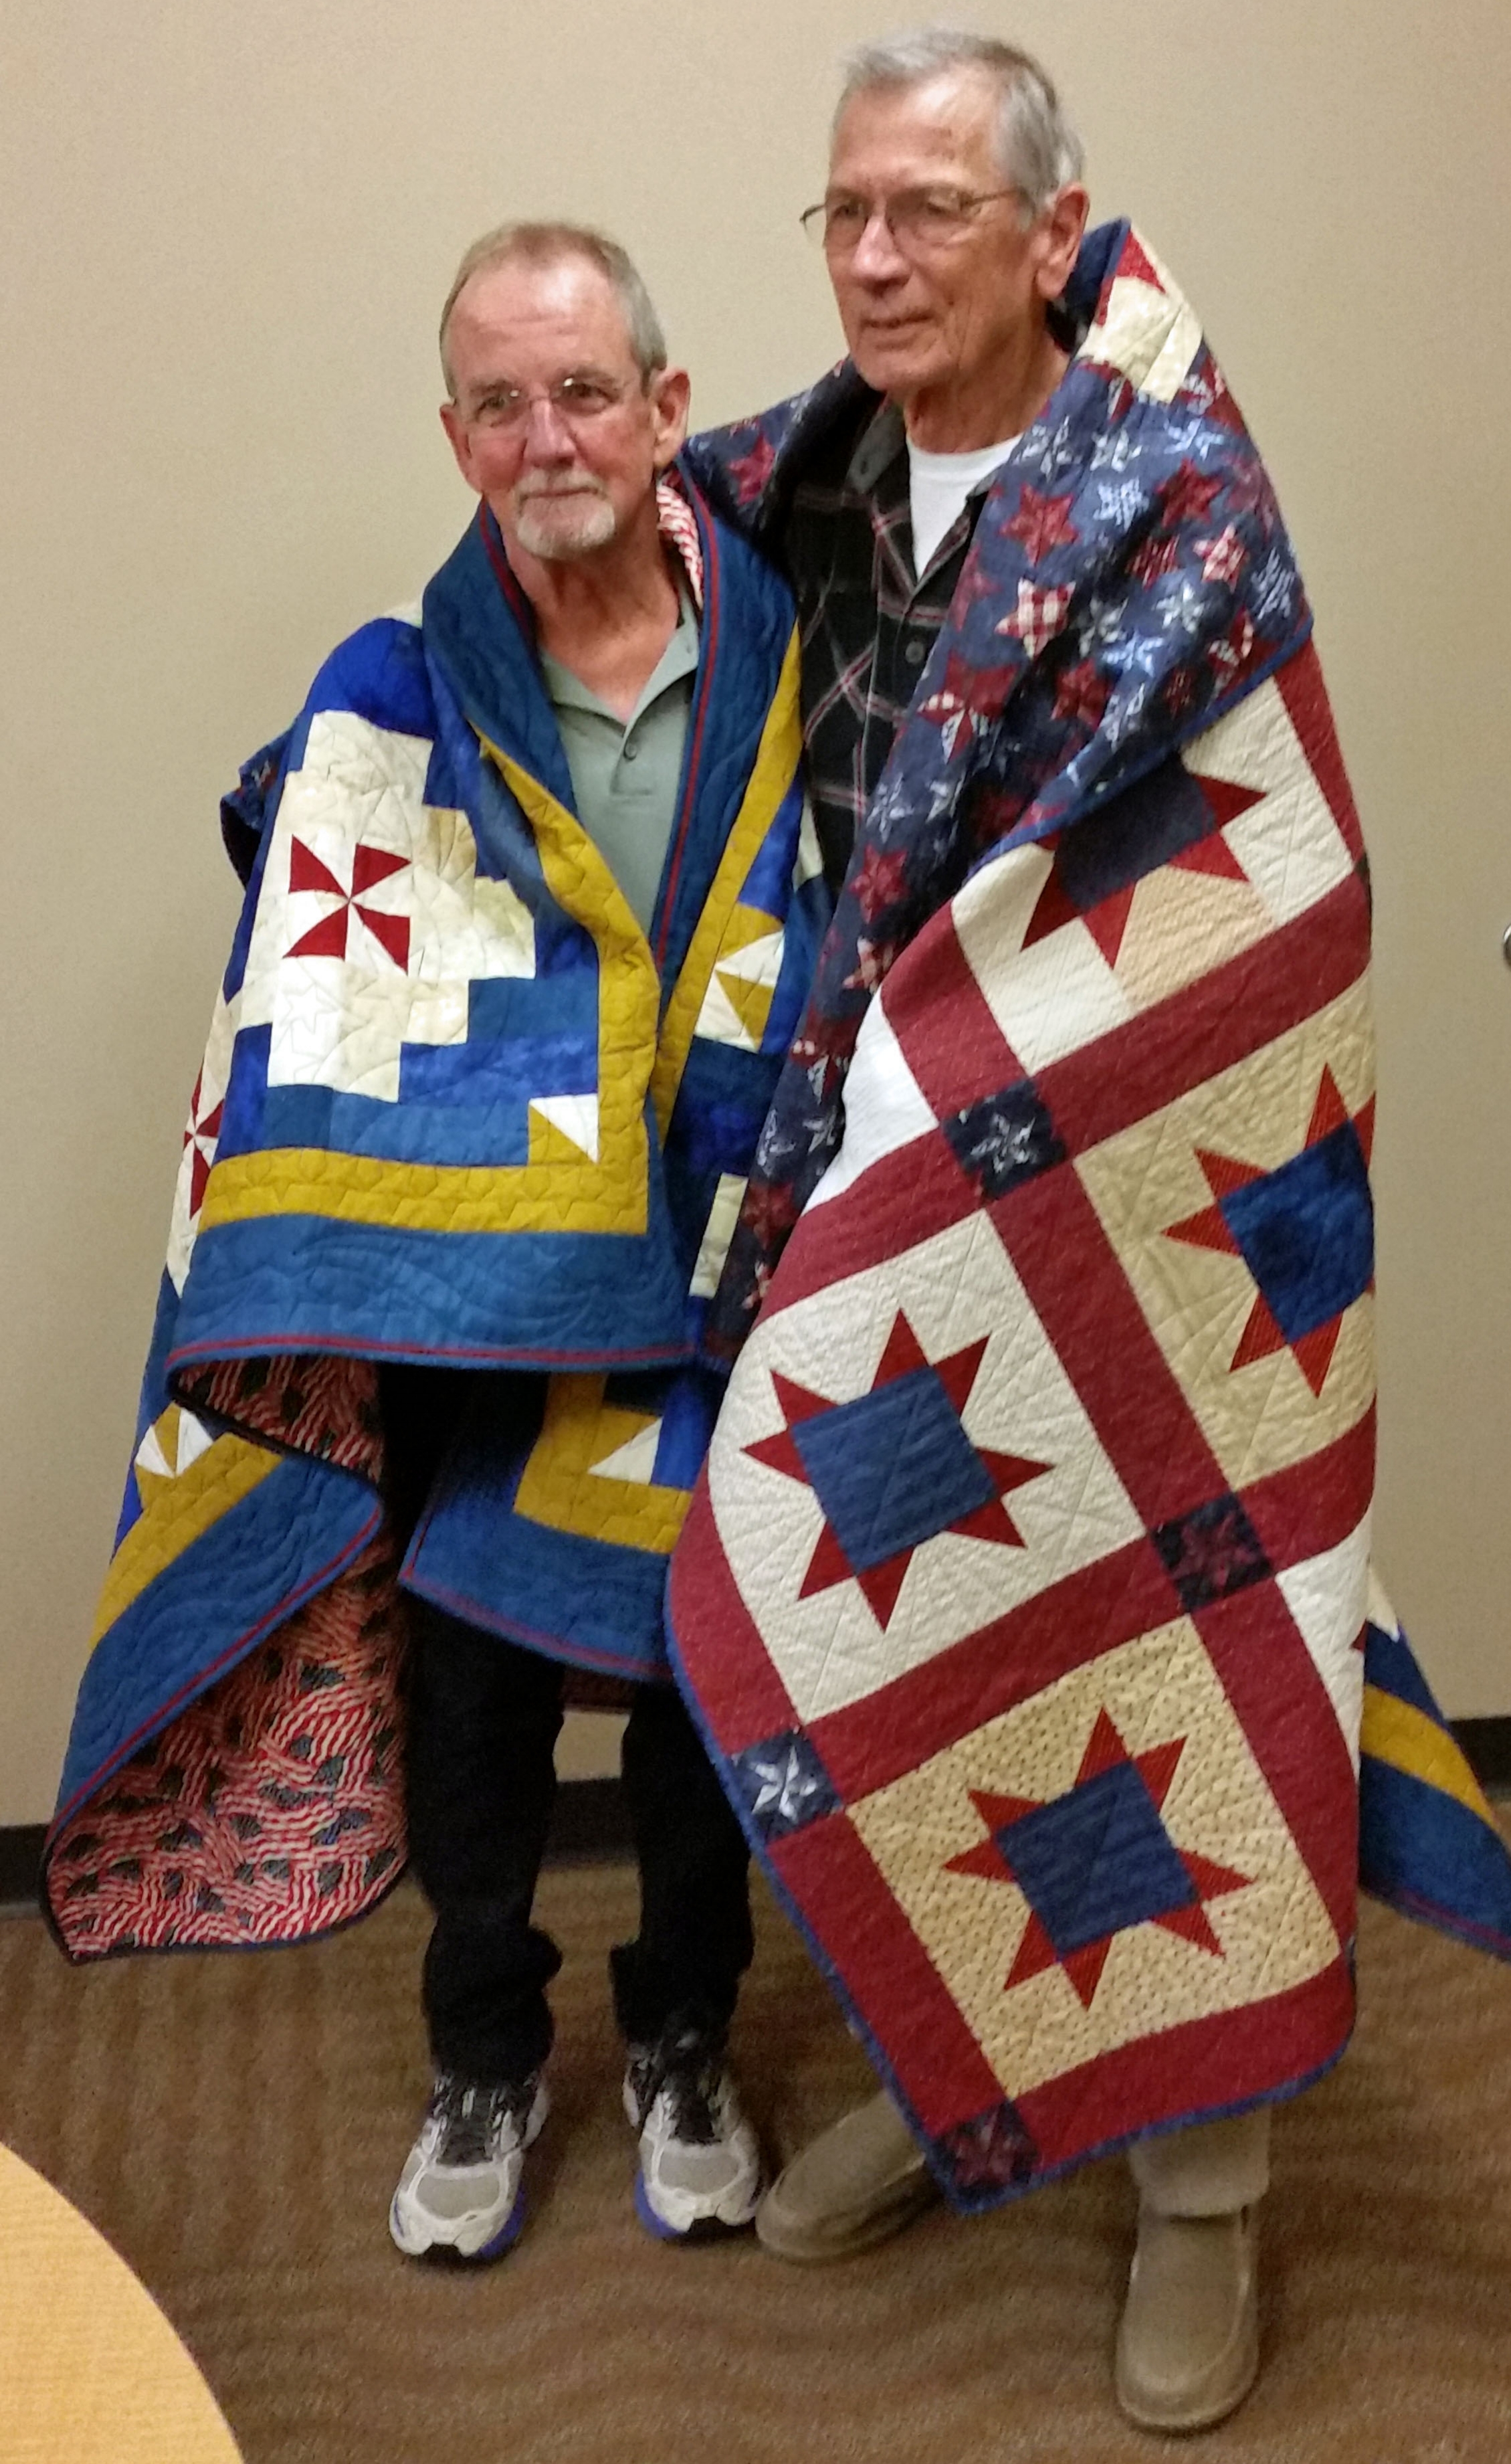 Two more quilts made by VQ members, awarded 10/30 in Lake Zurich.